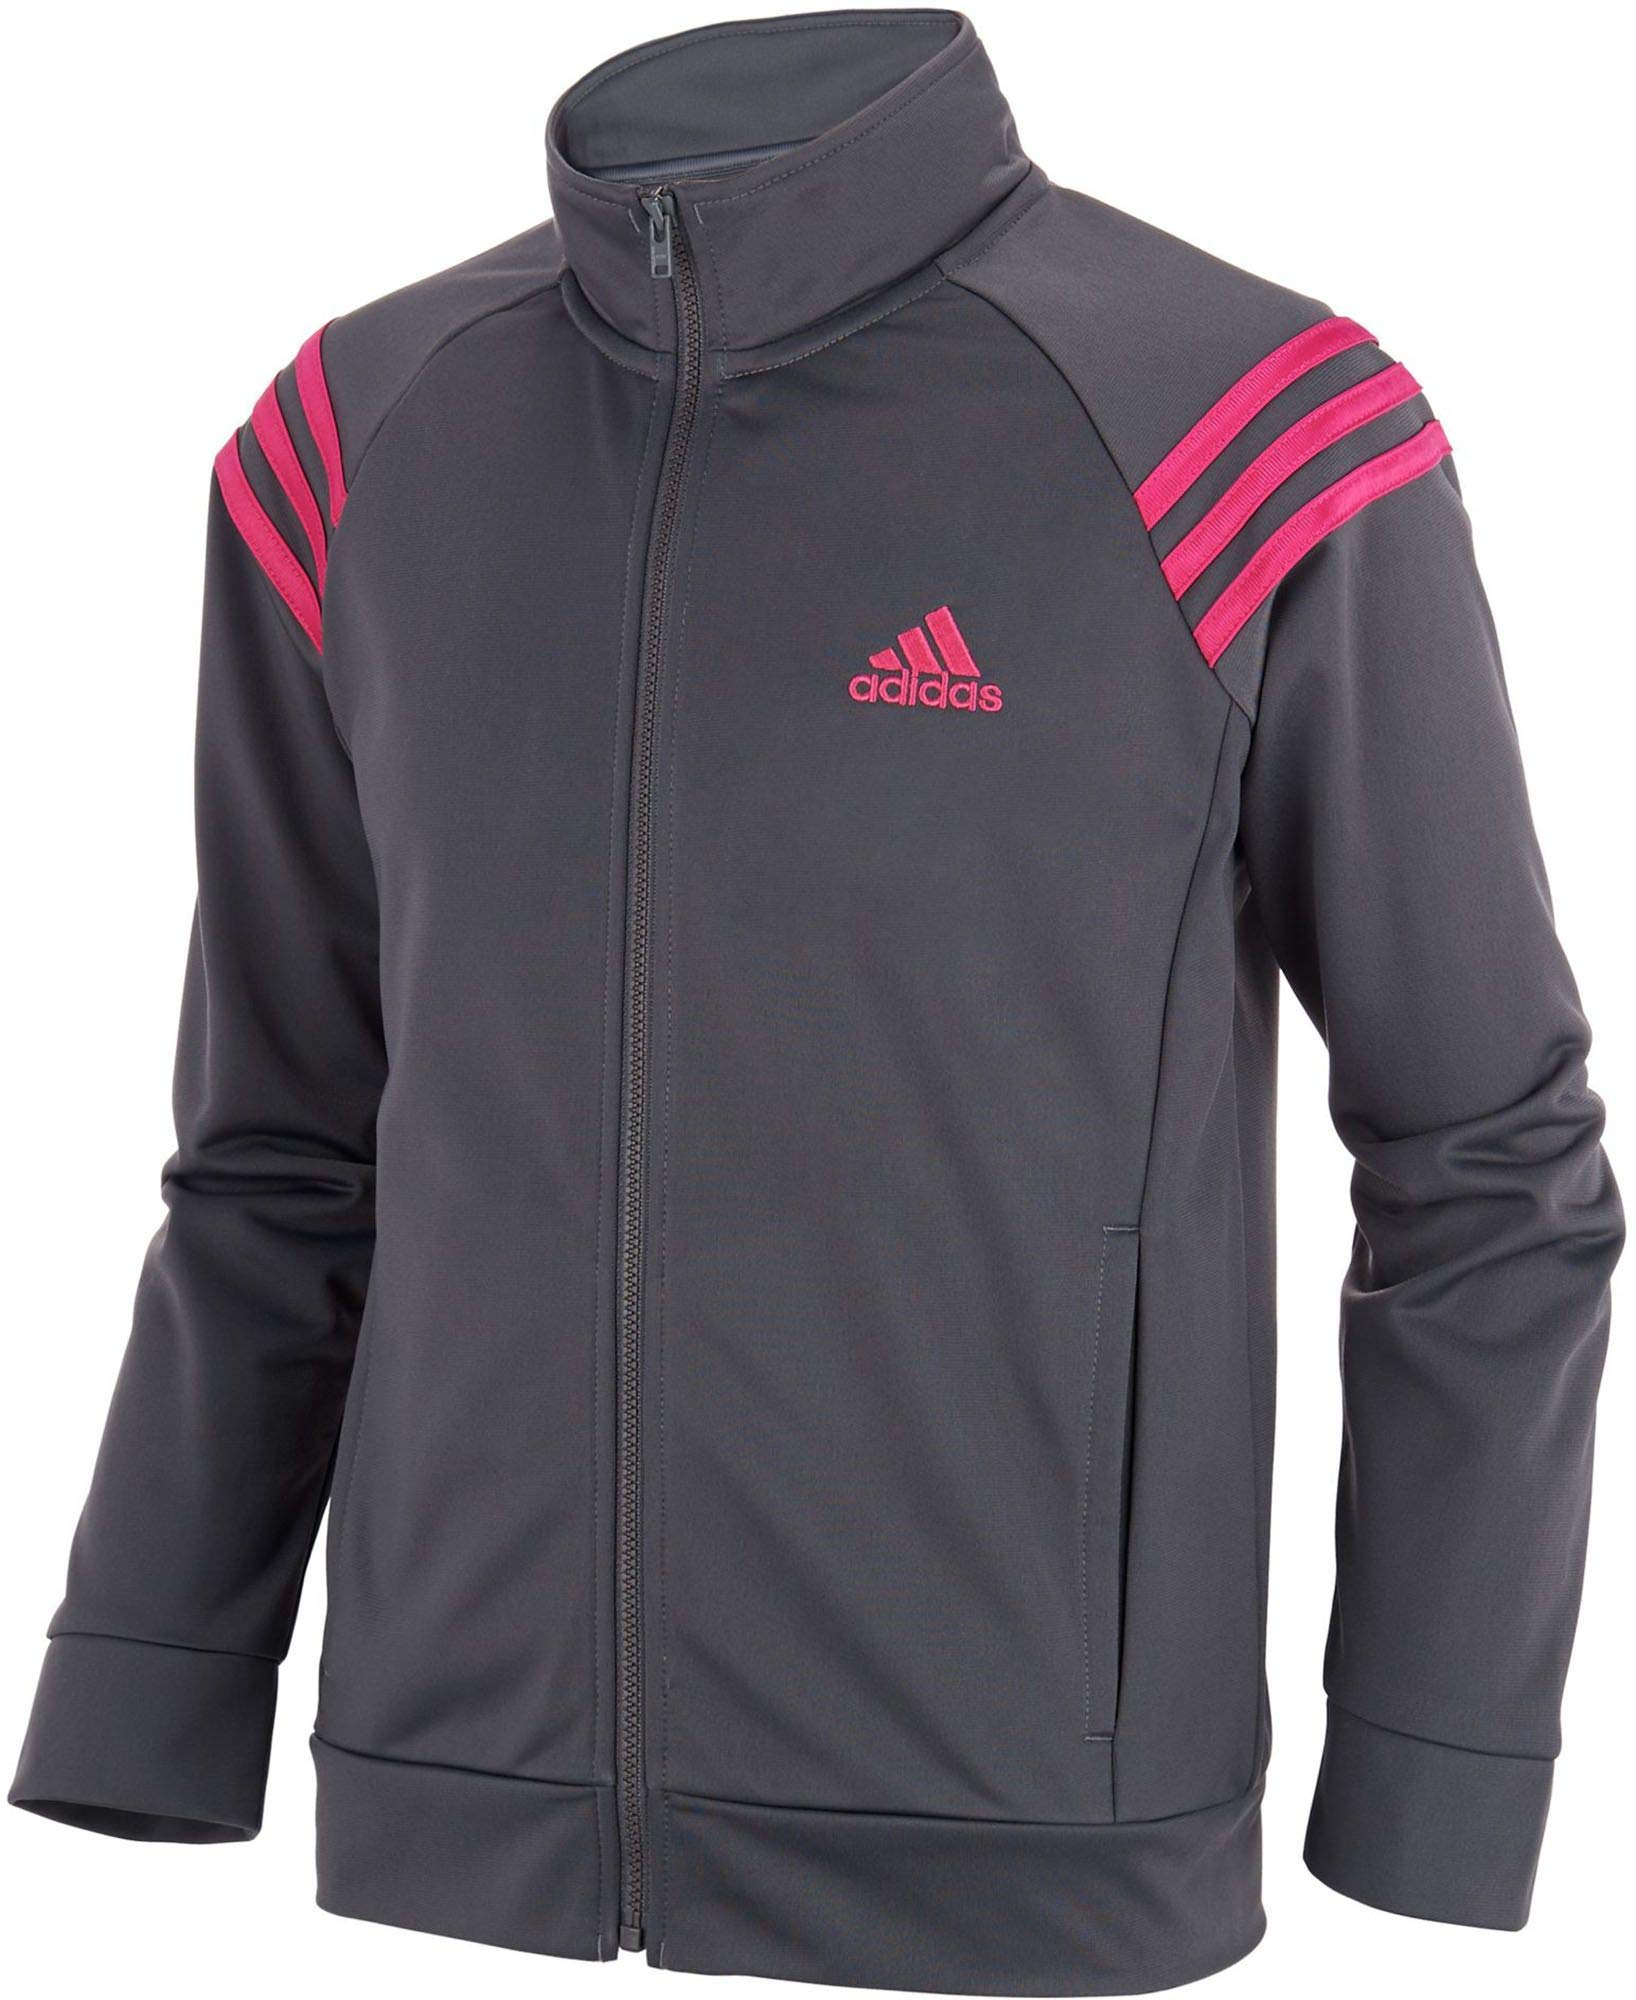 adidas Girl's Event Jacket (Grey, X-Large) by adidas